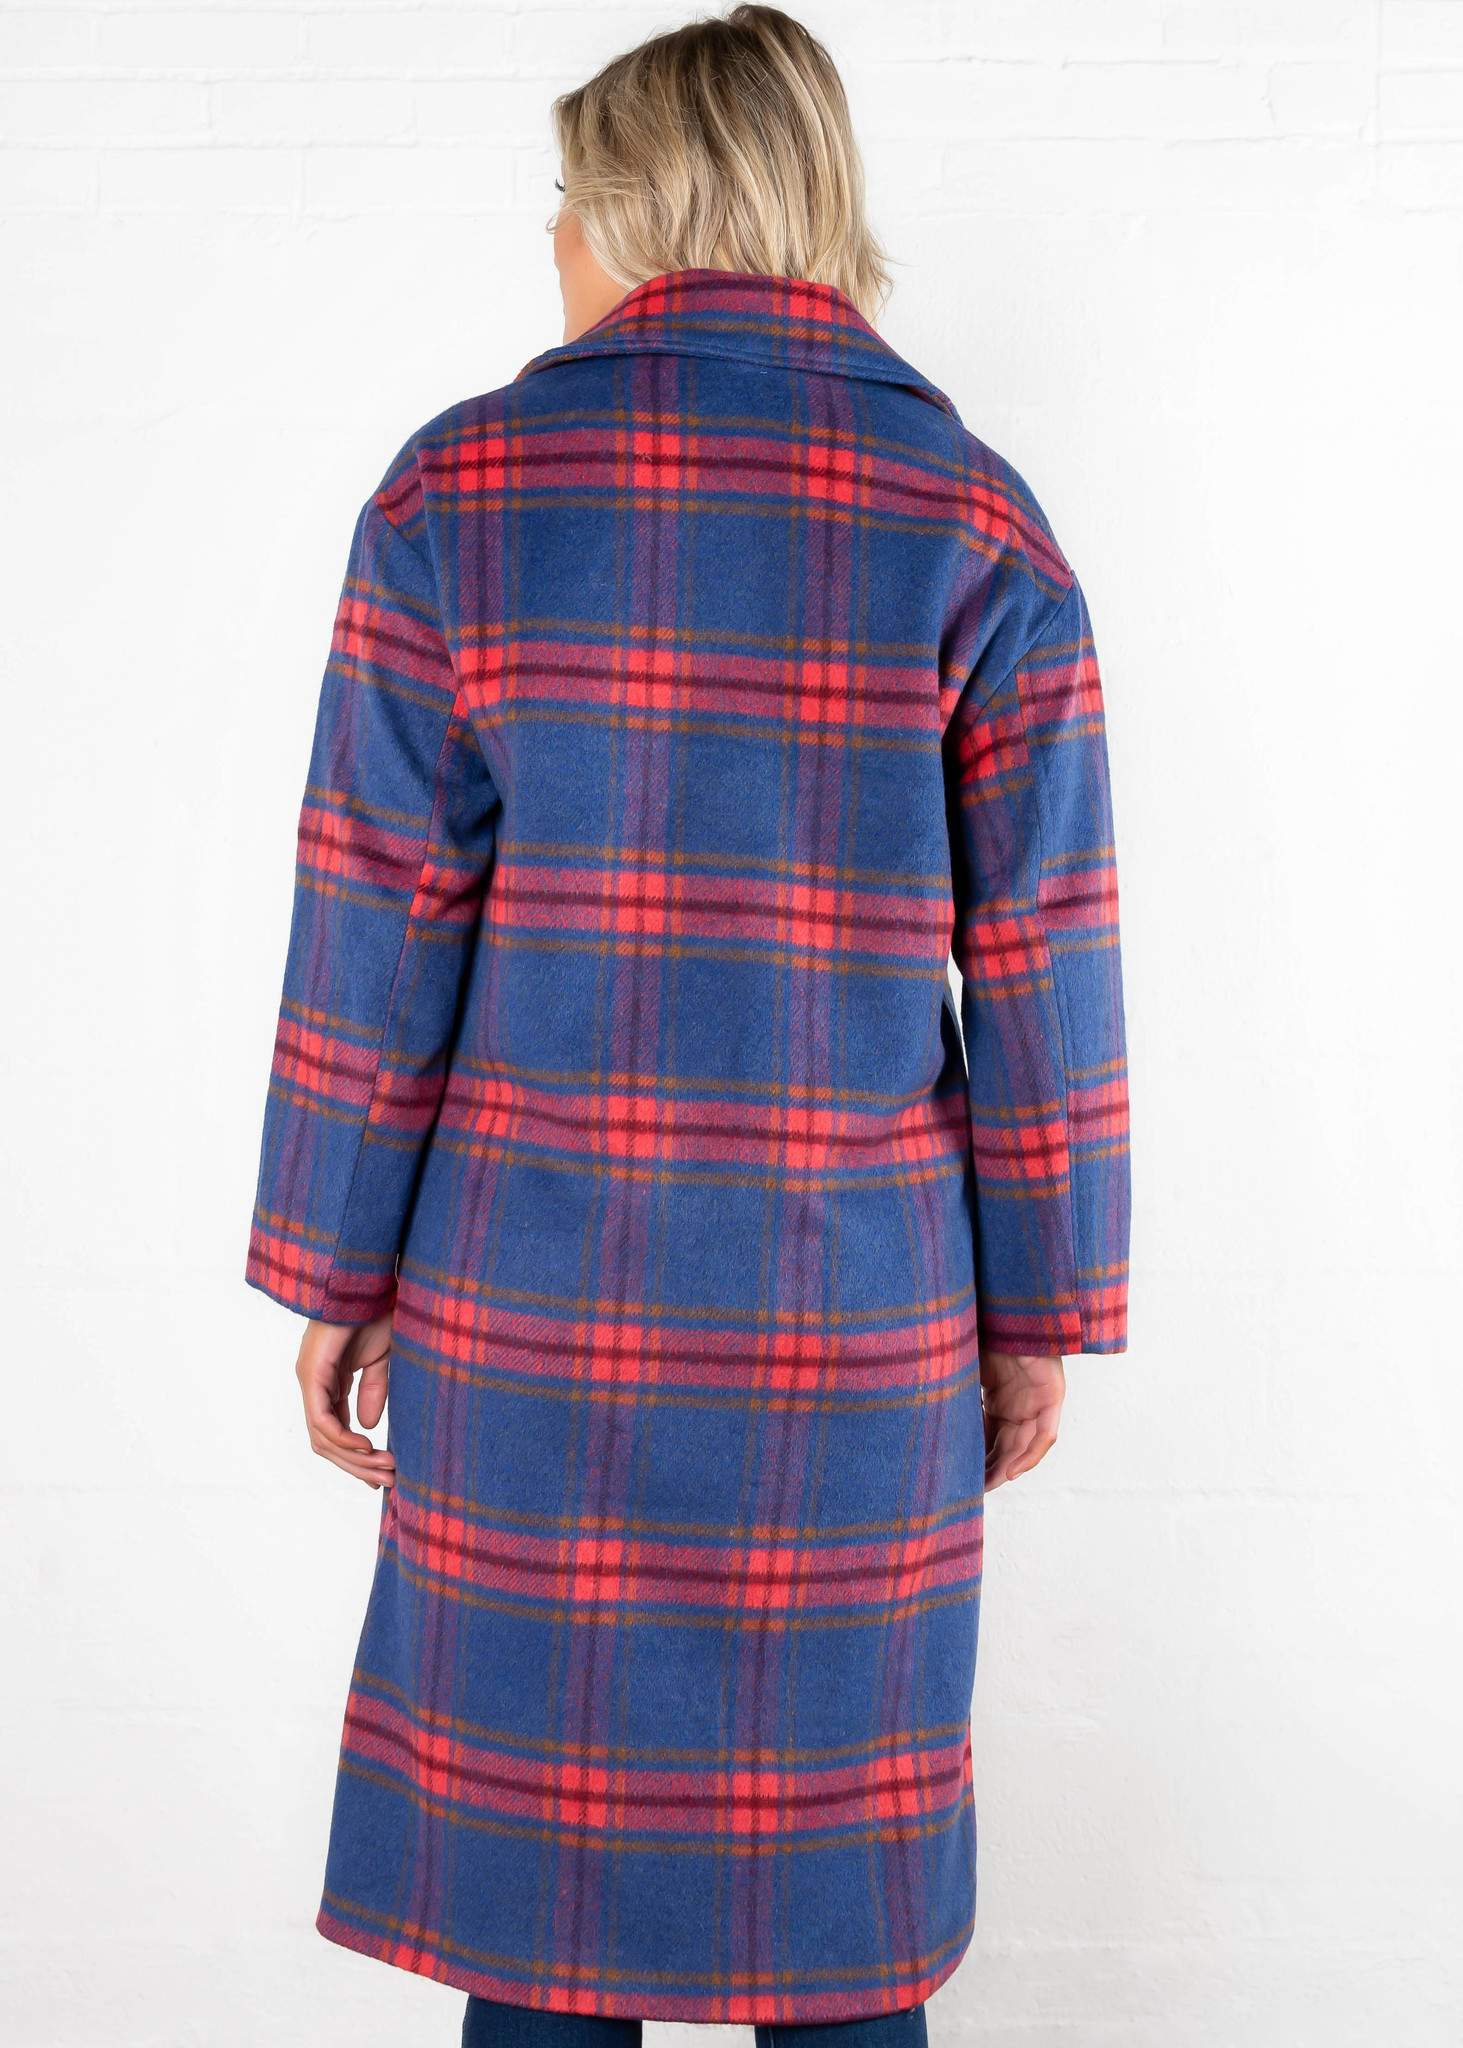 CLAIM TO FAME PLAID COAT